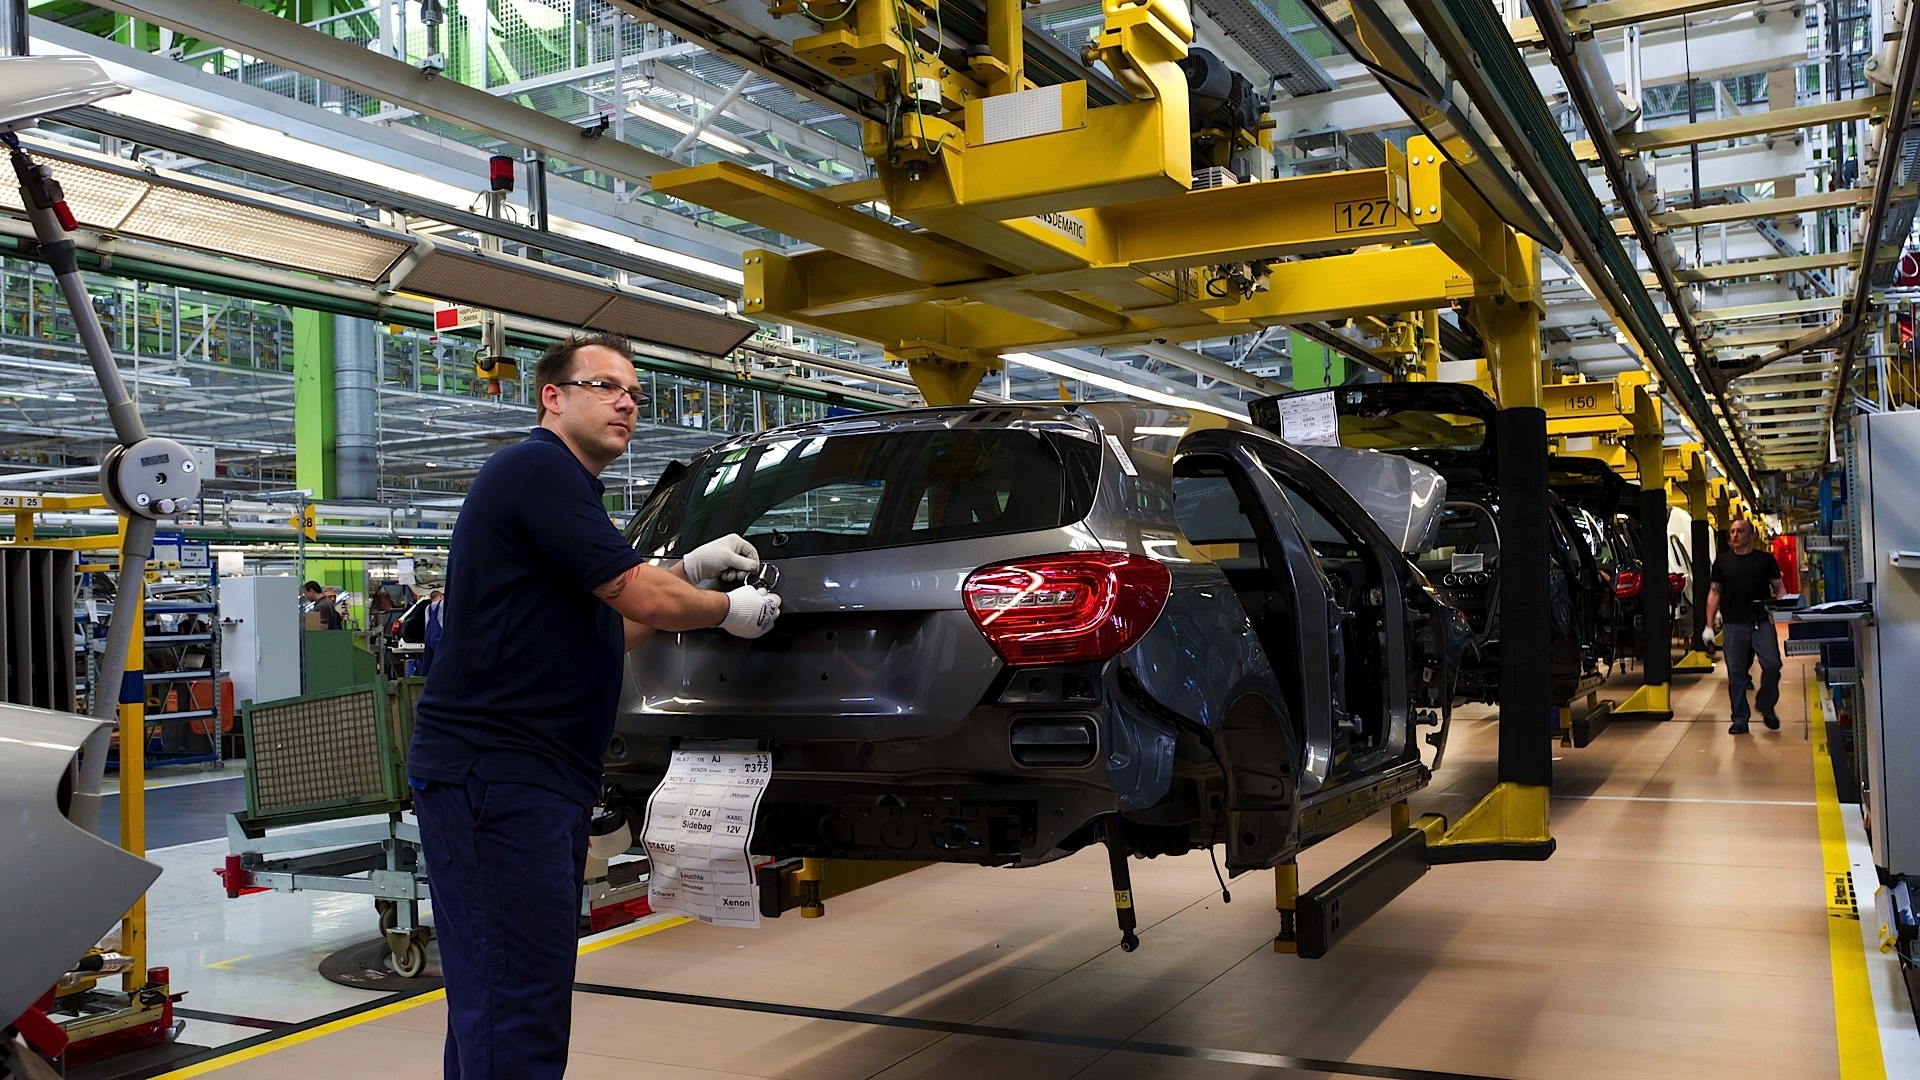 mercedes a-class production begins in germany - autoevolution